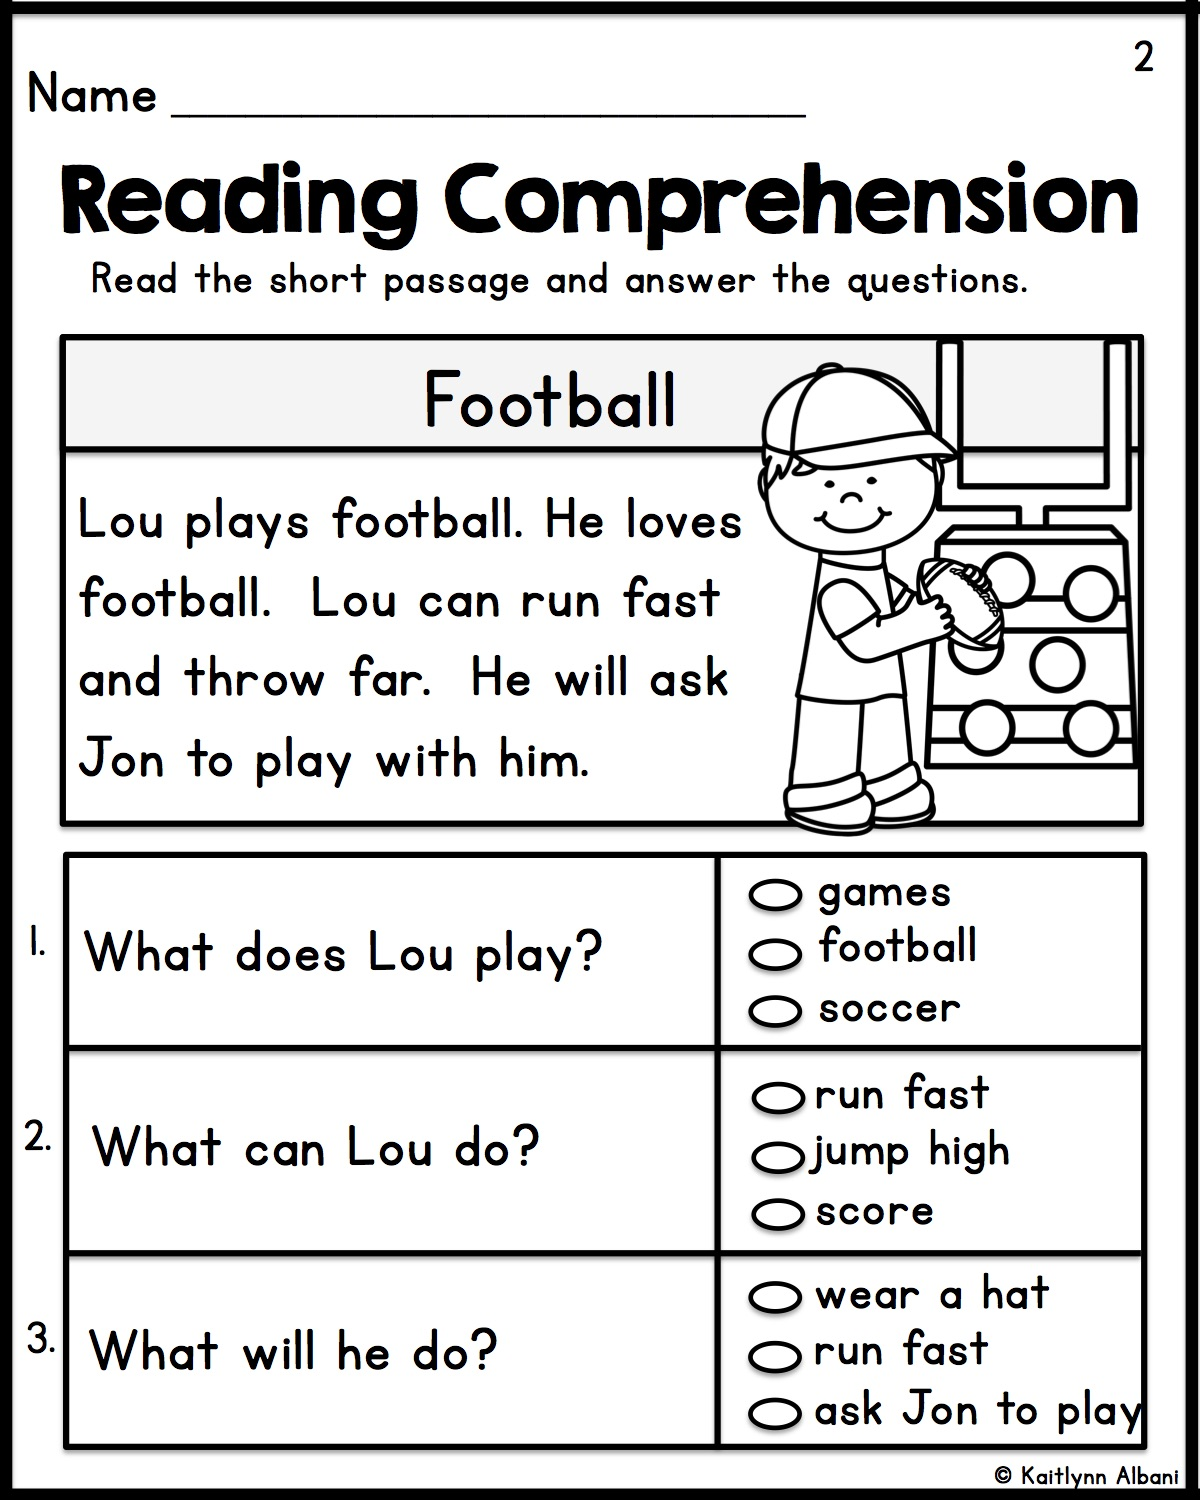 Simple Reading Comprehension Worksheets 1st Grade